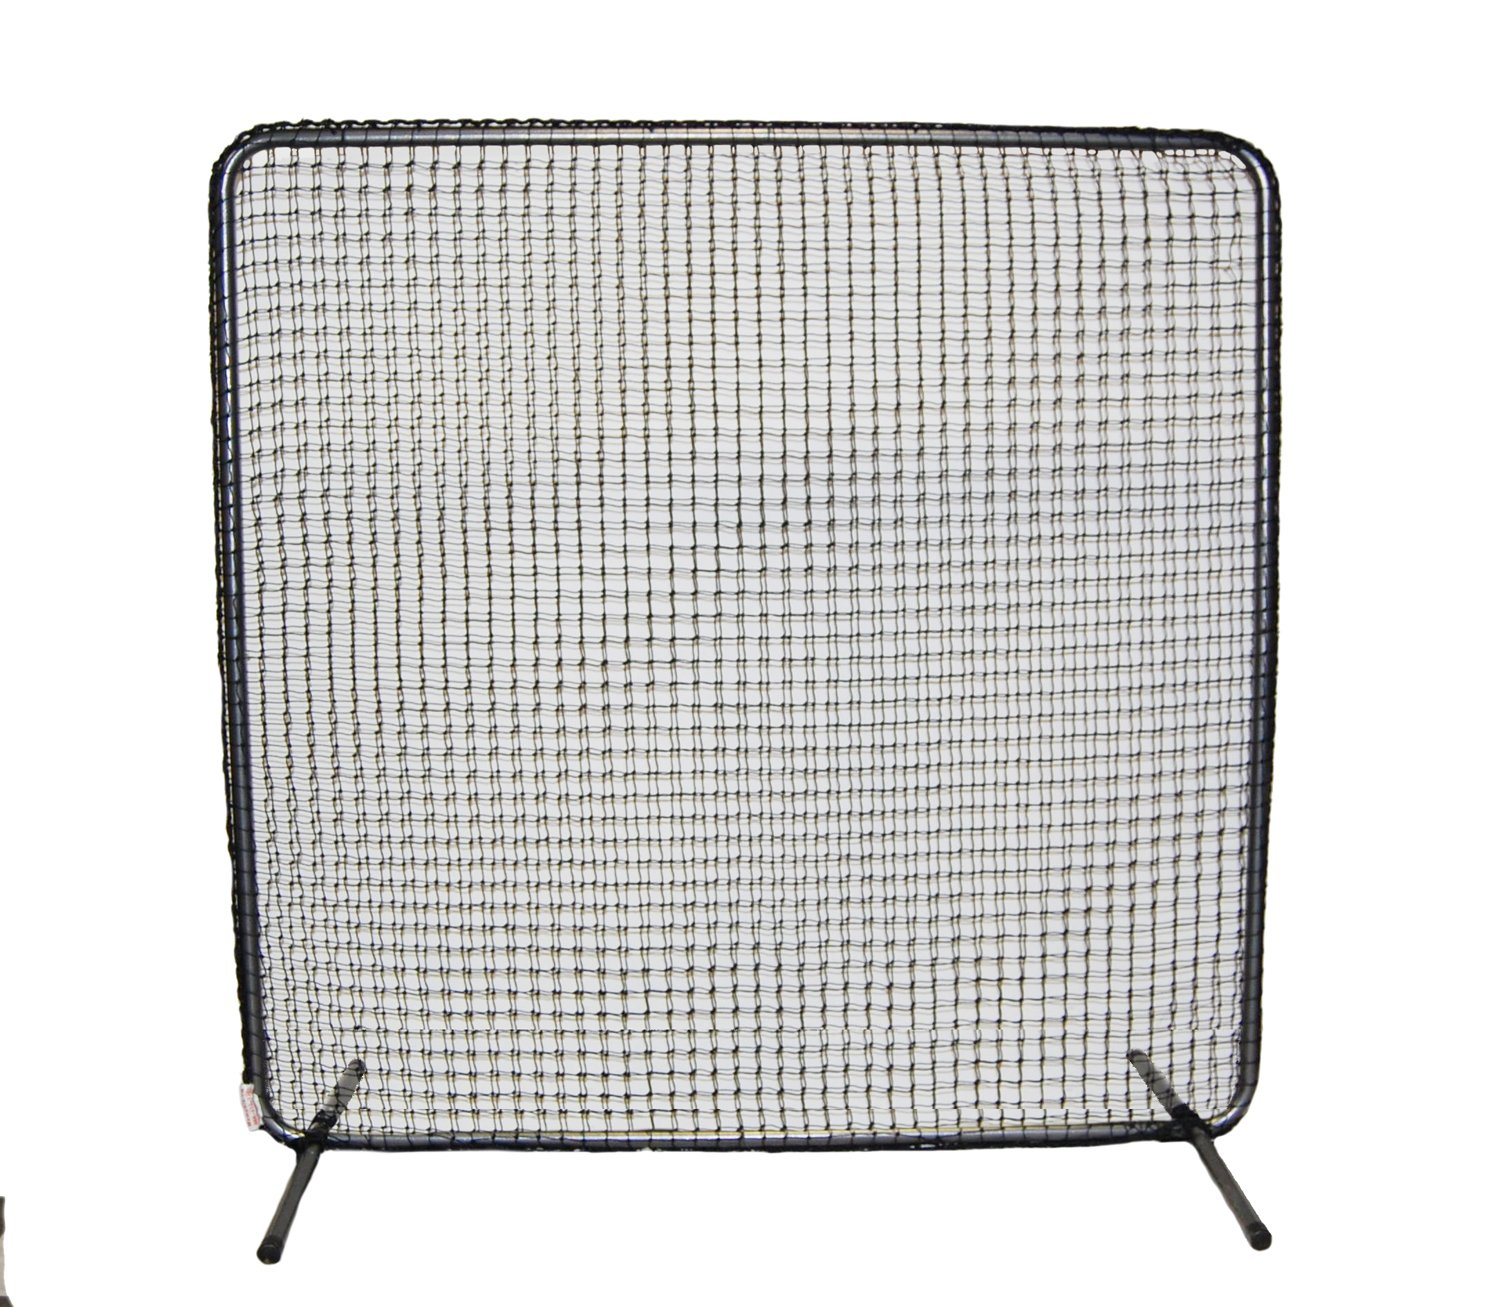 ProCage 60 Series 1st Base Fungo Frame with Net 7 x 7' Grey